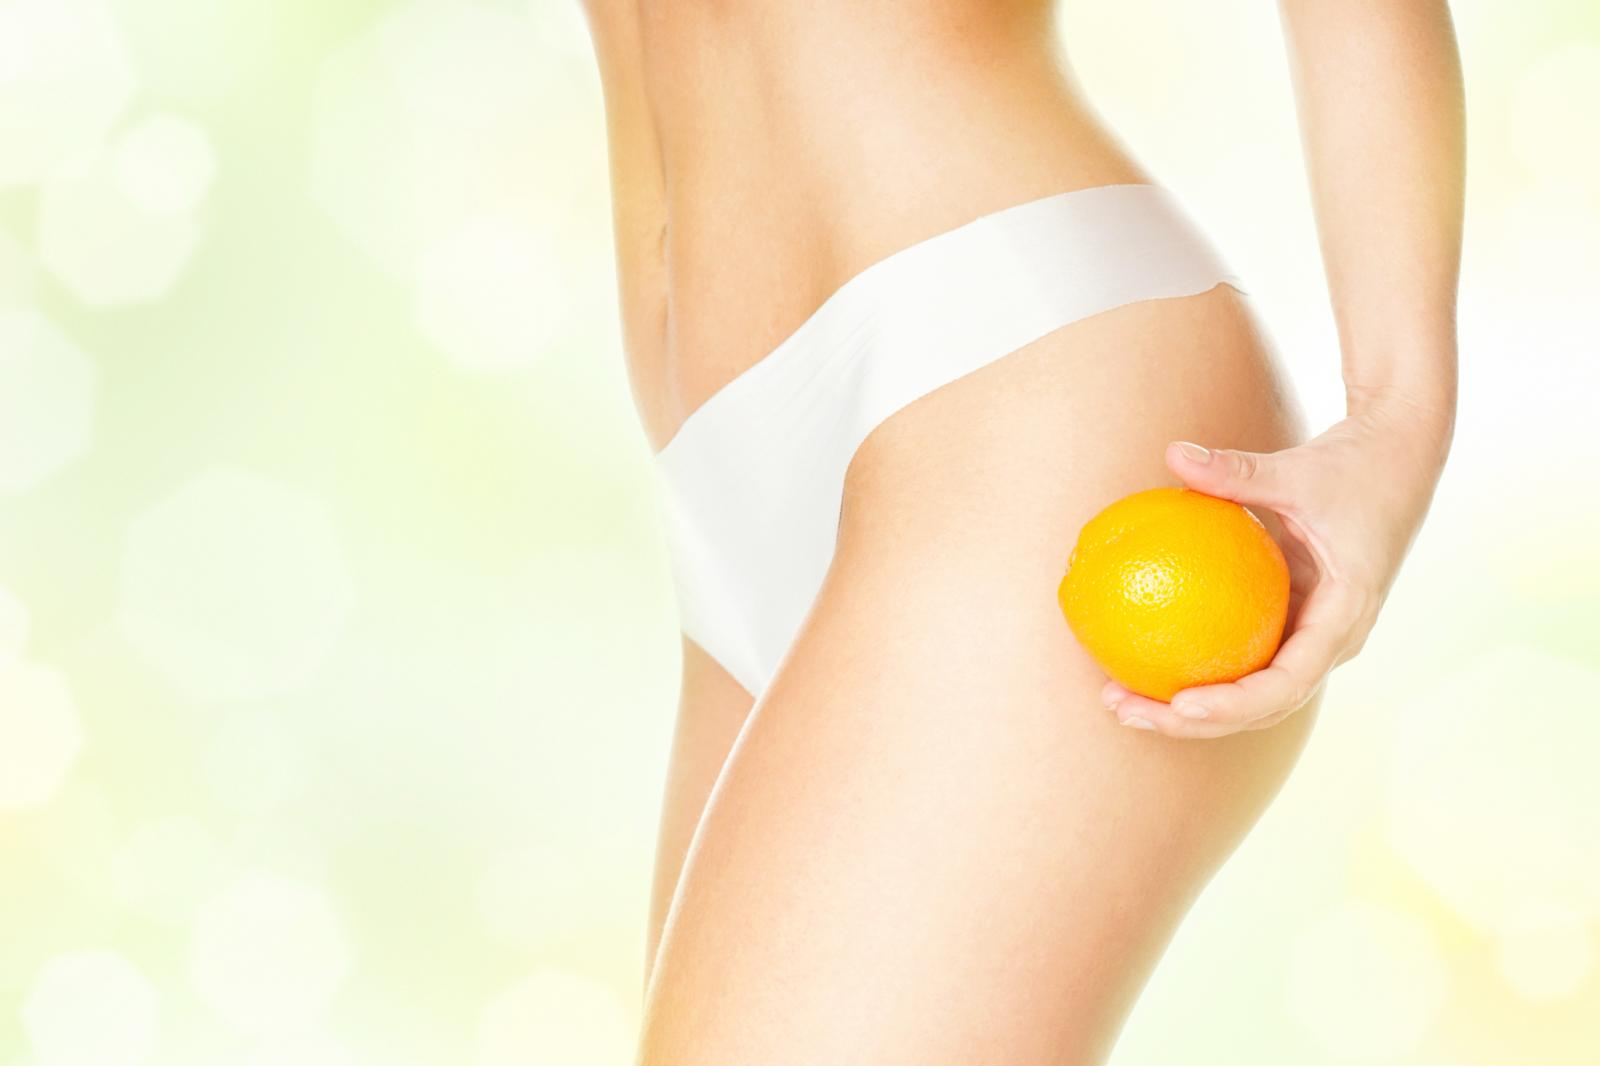 Woman in white underpants holding an orange